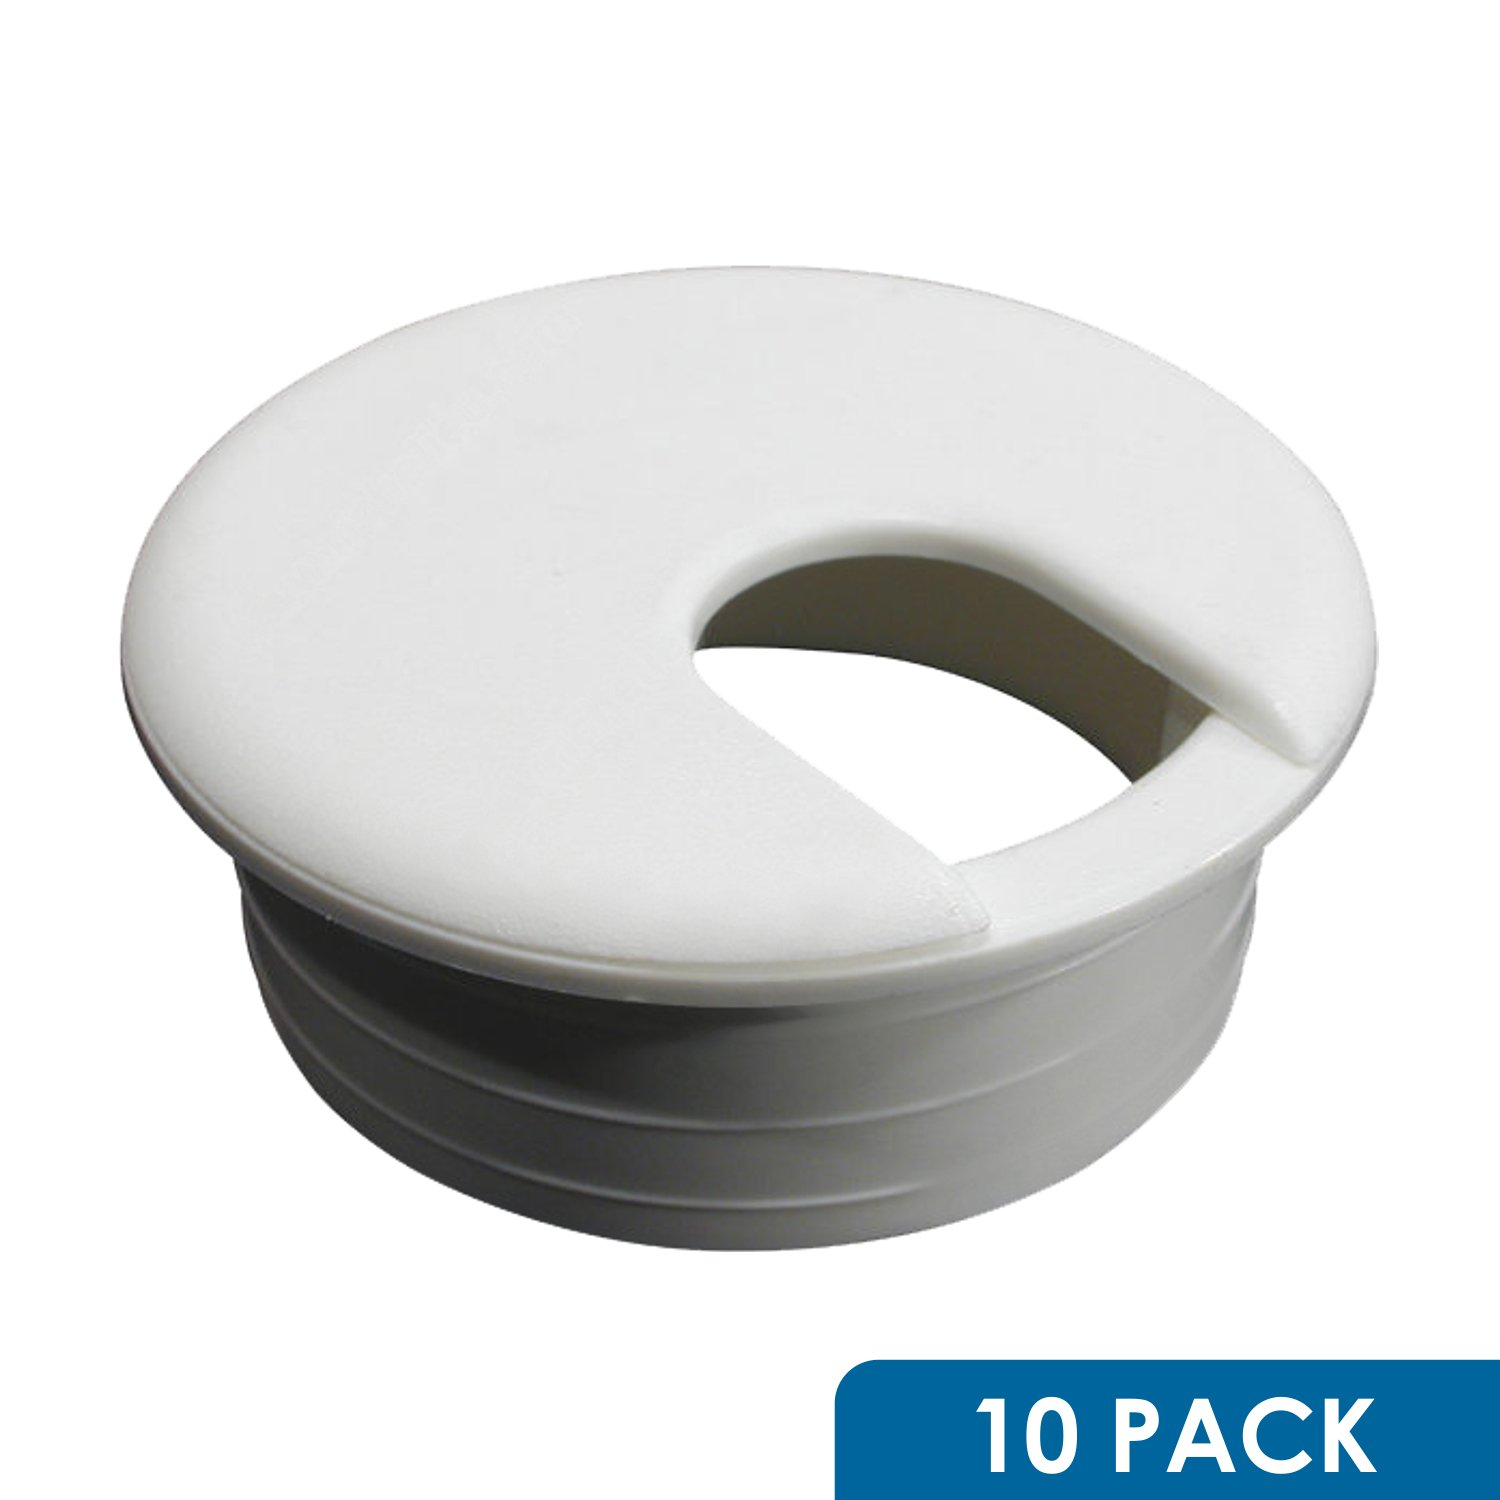 10 Pack Rok Hardware 3'' (76mm) Round Gray Computer Desk Table Port Wire Cable Organizer Hole Cover Grommet